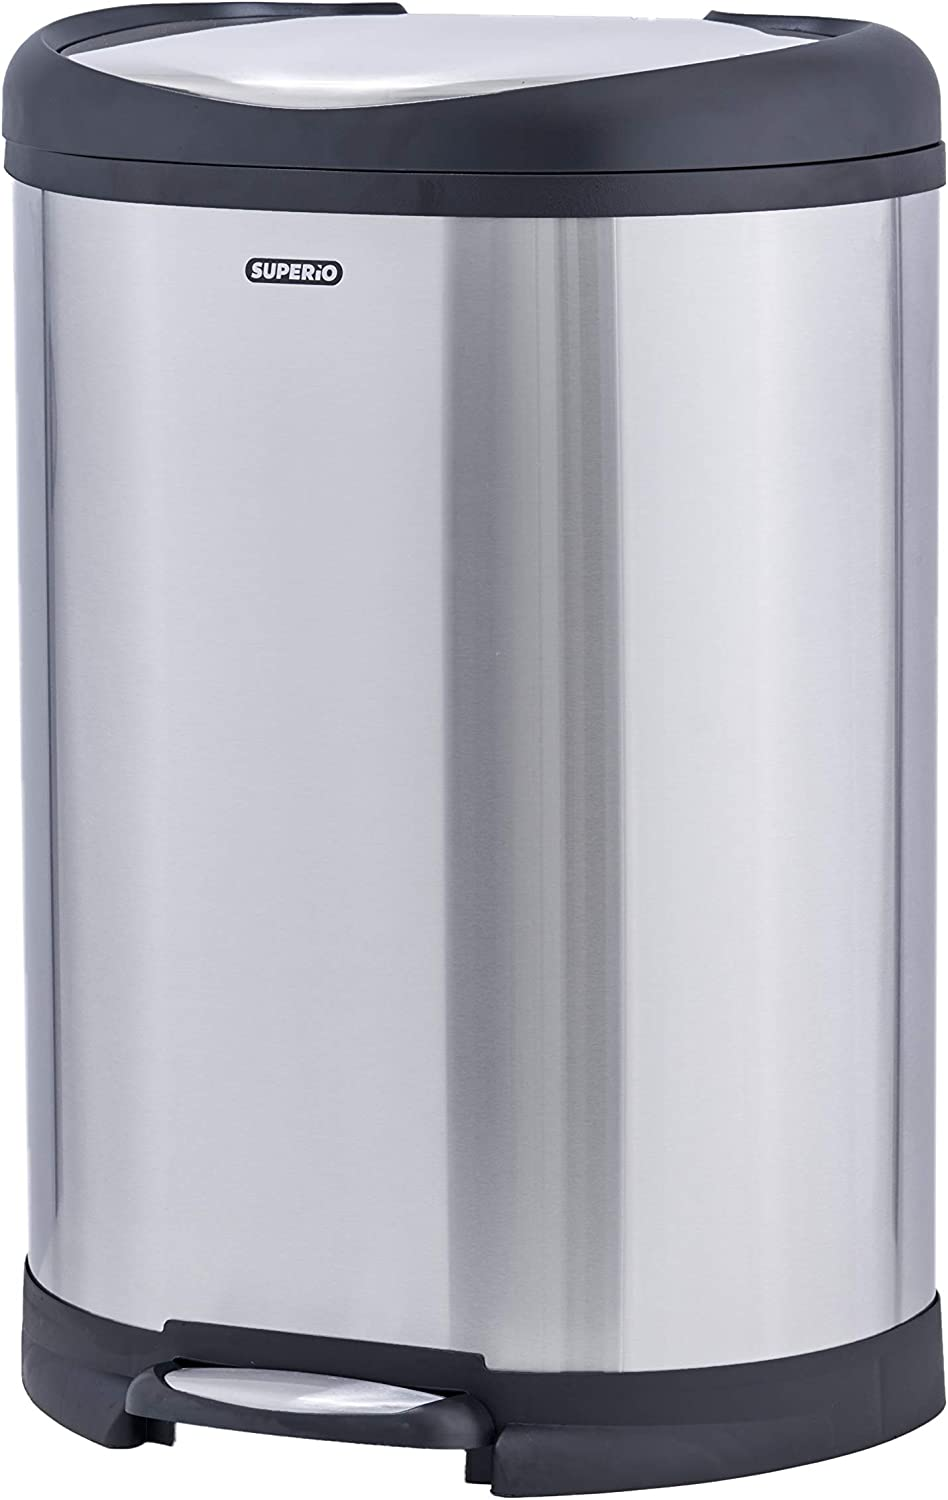 """Superio Stainless Steel Garbage Pail-50 Liter / 13 Gallon D Shaped Trash Can with Lid (27""""H x 19""""W x 13""""D)"""